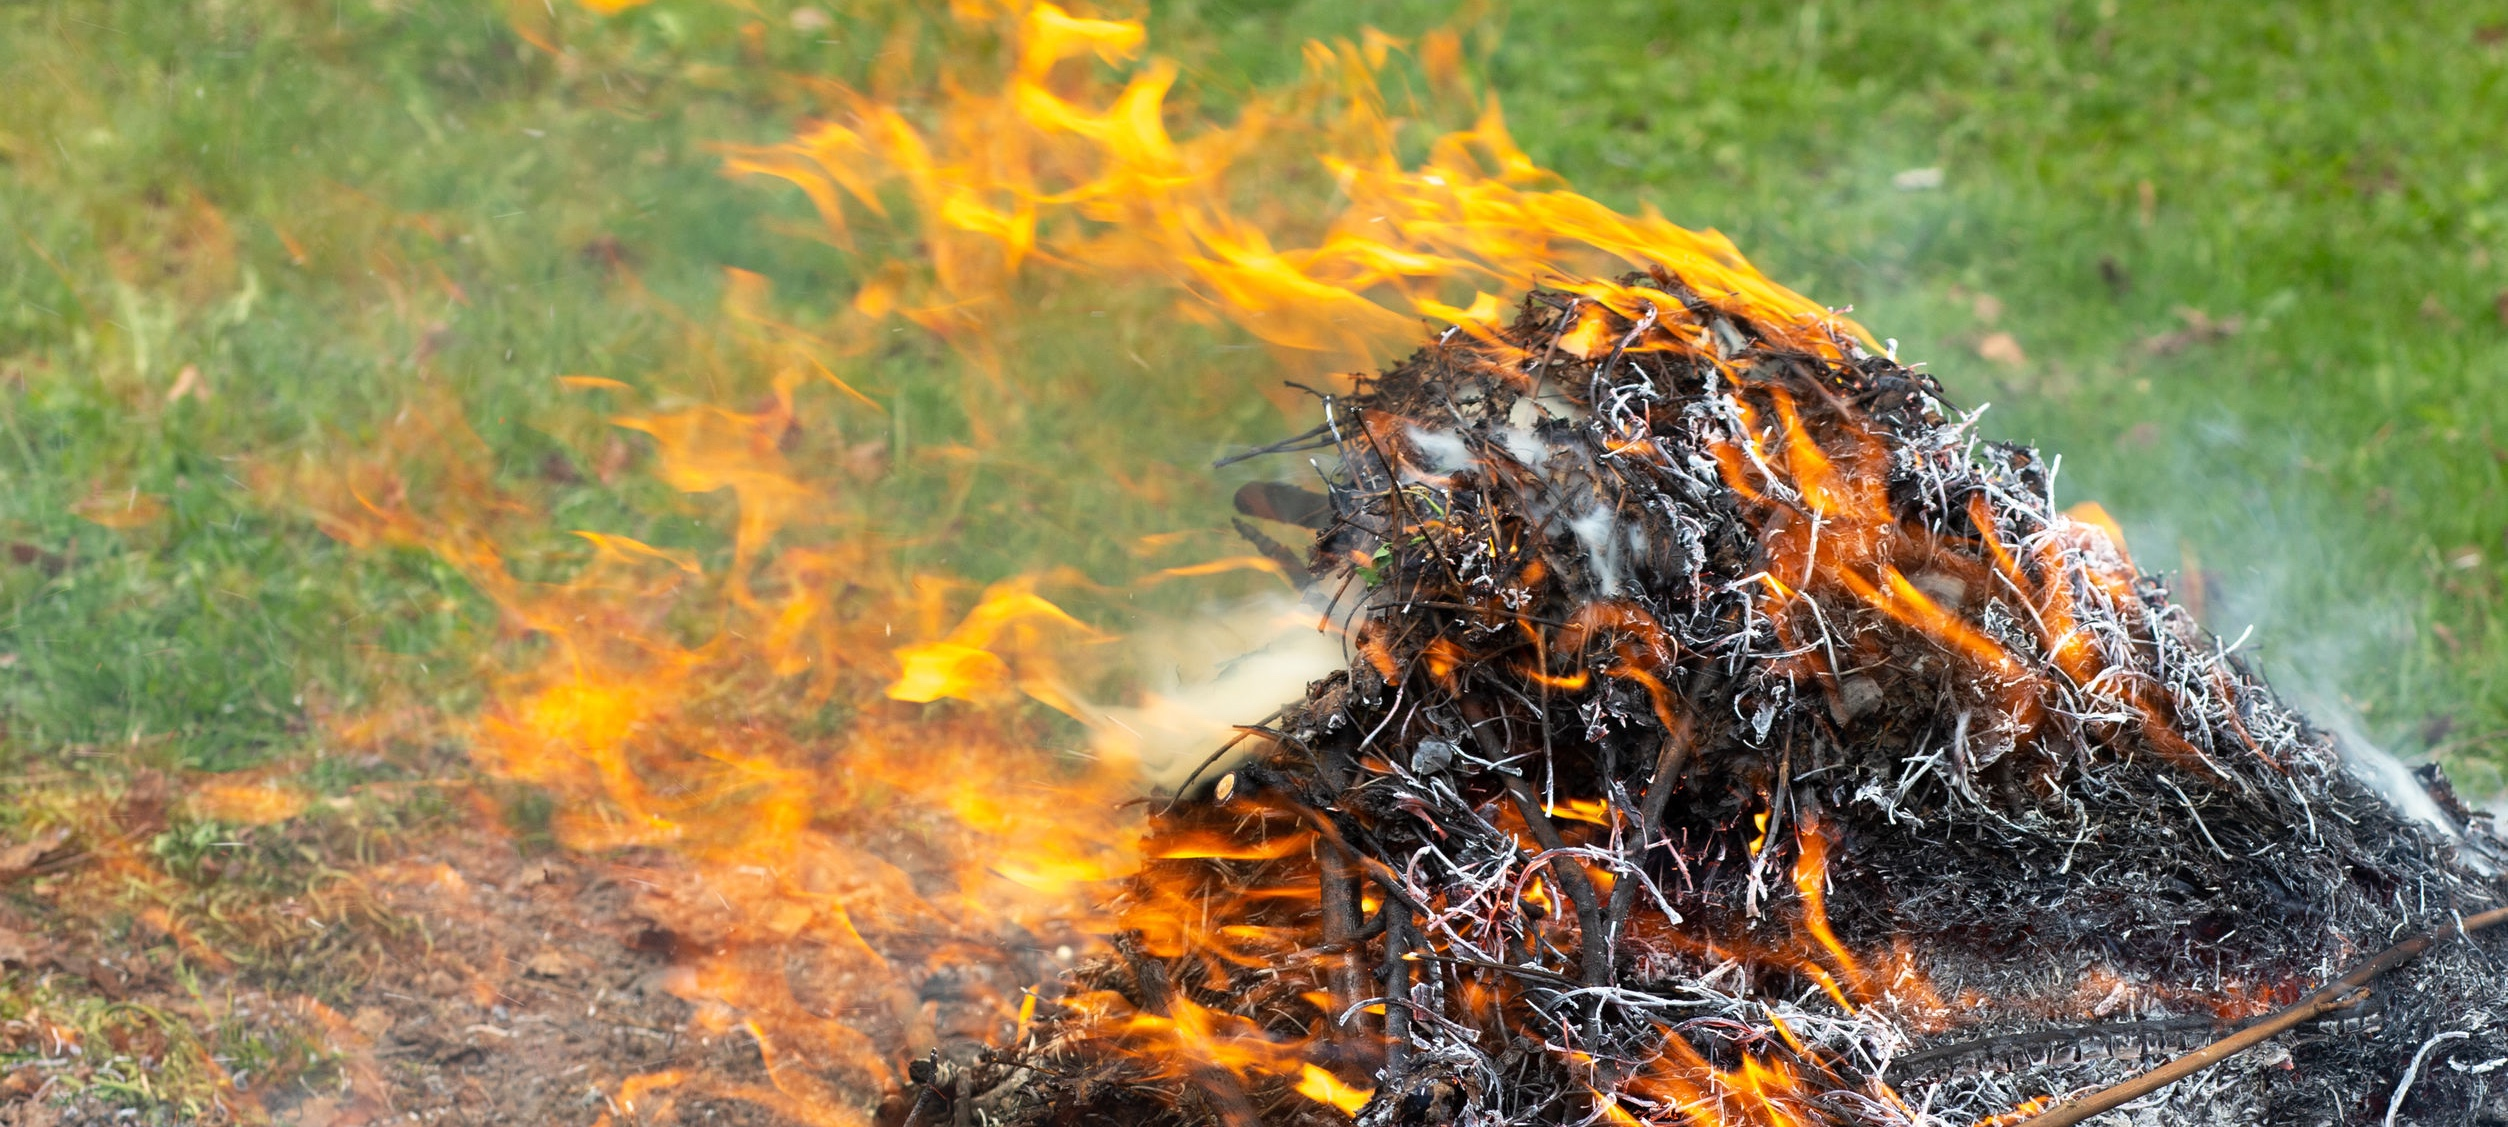 Materials being burned outside